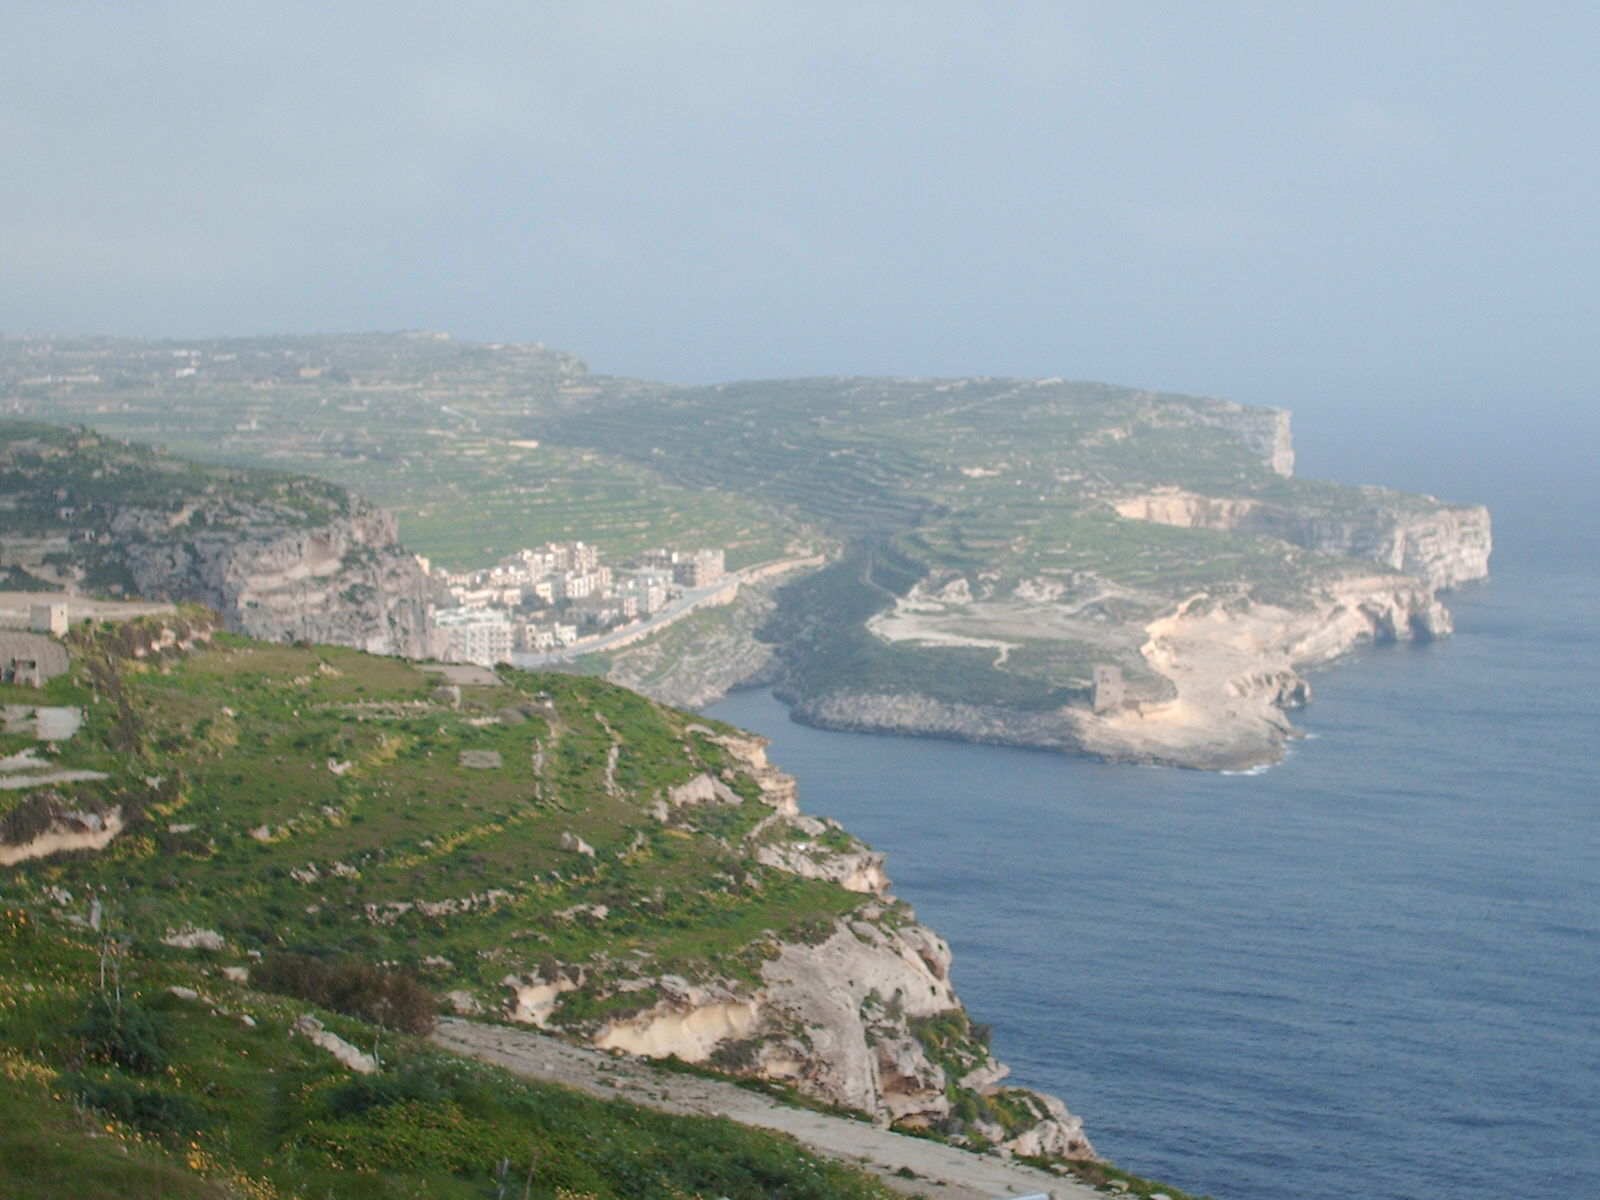 View of Xlendi with the Jeeps from Ta' Cenc